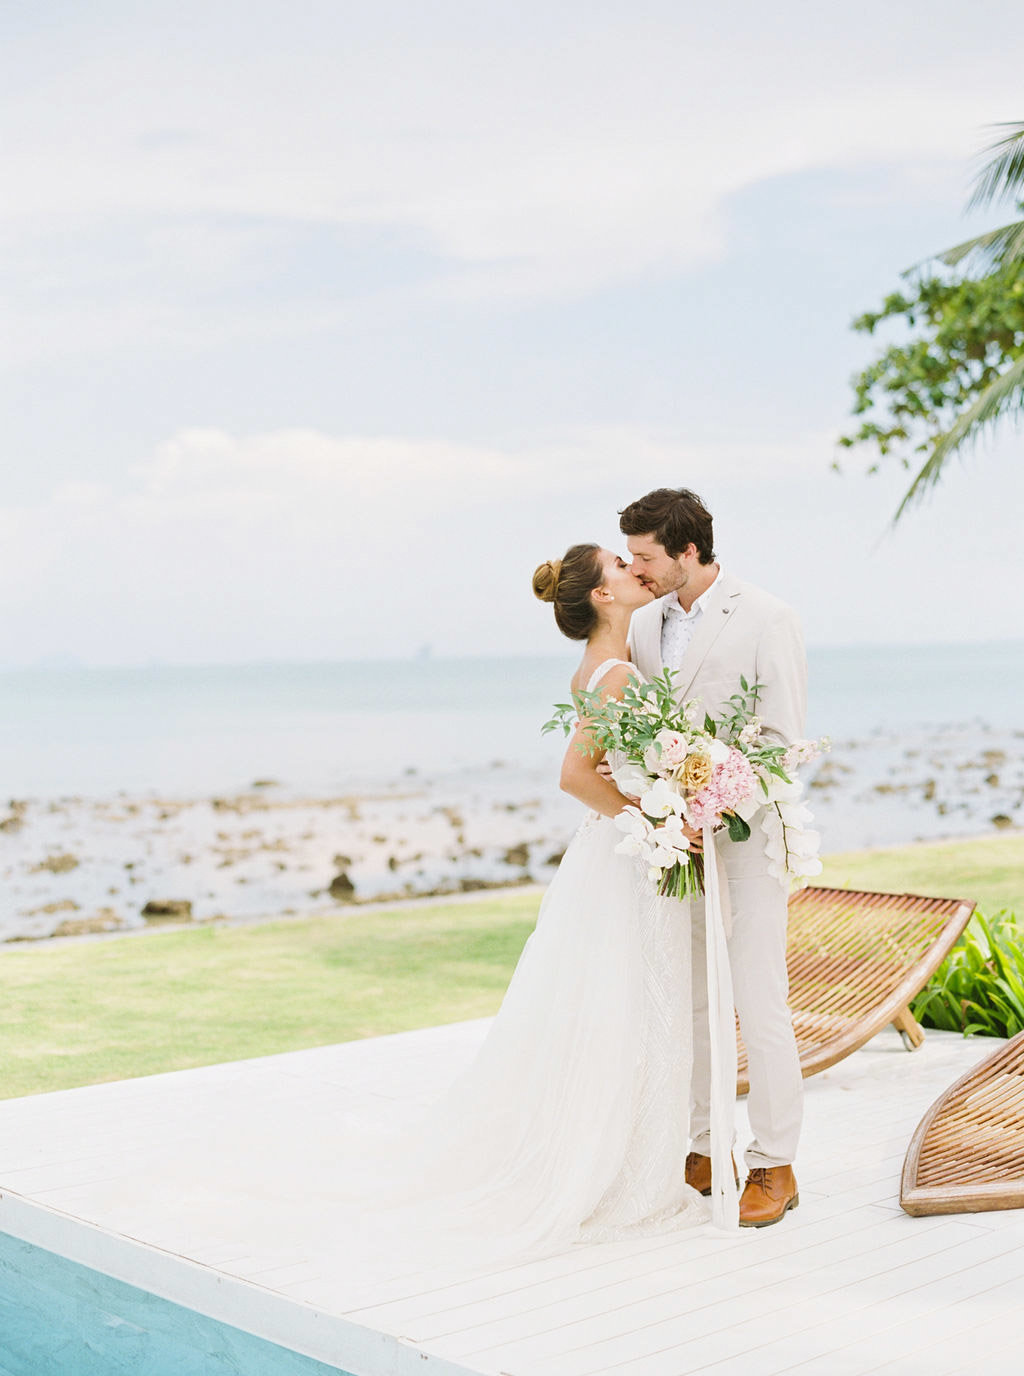 Thailand Wedding Venues Destination Koh Yao Noi By Fine Art Film Wedding Photographer Sheri McMahon-00052